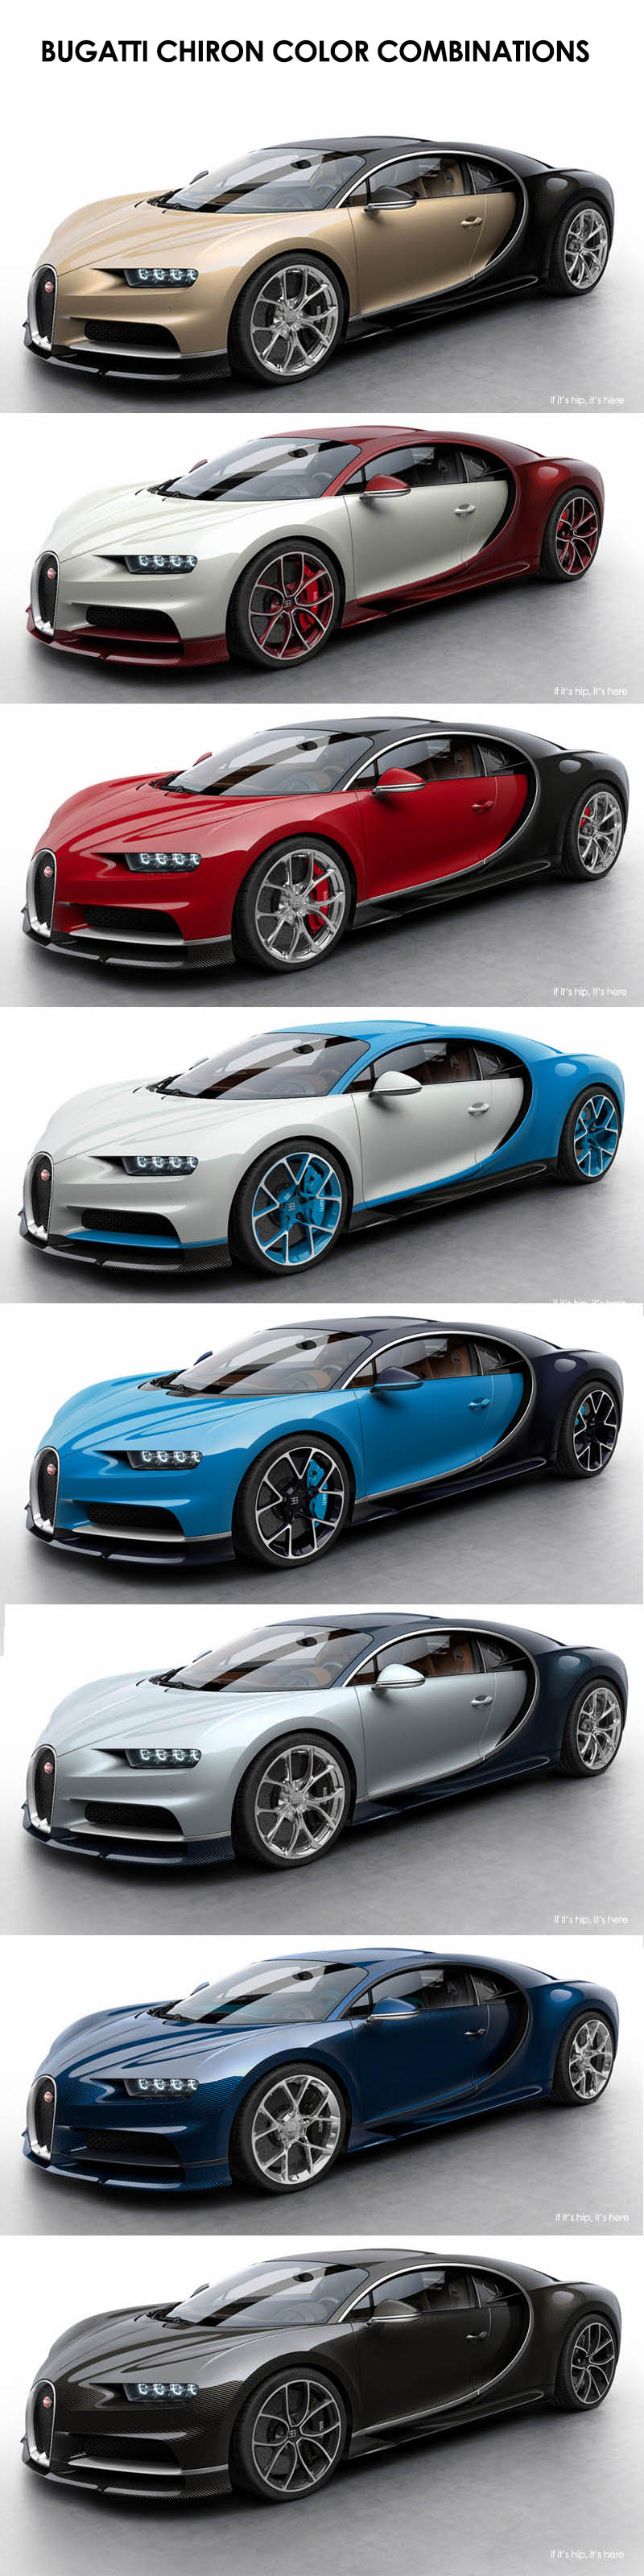 the bugatti chiron unveiled beast beauty and balls on four wheels if it 39 s hip it 39 s here. Black Bedroom Furniture Sets. Home Design Ideas